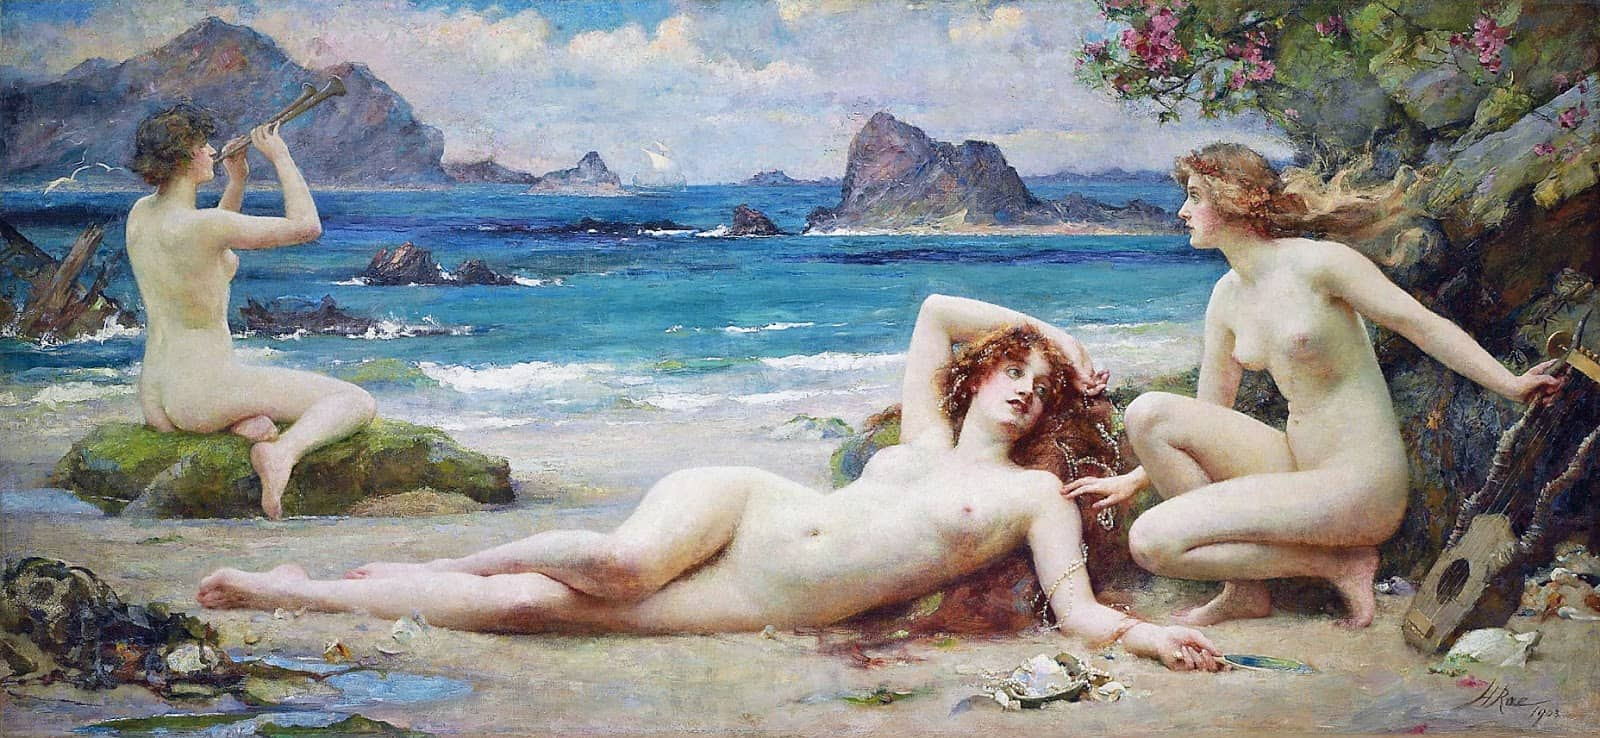 Henrietta Rae - The Sirens 1903